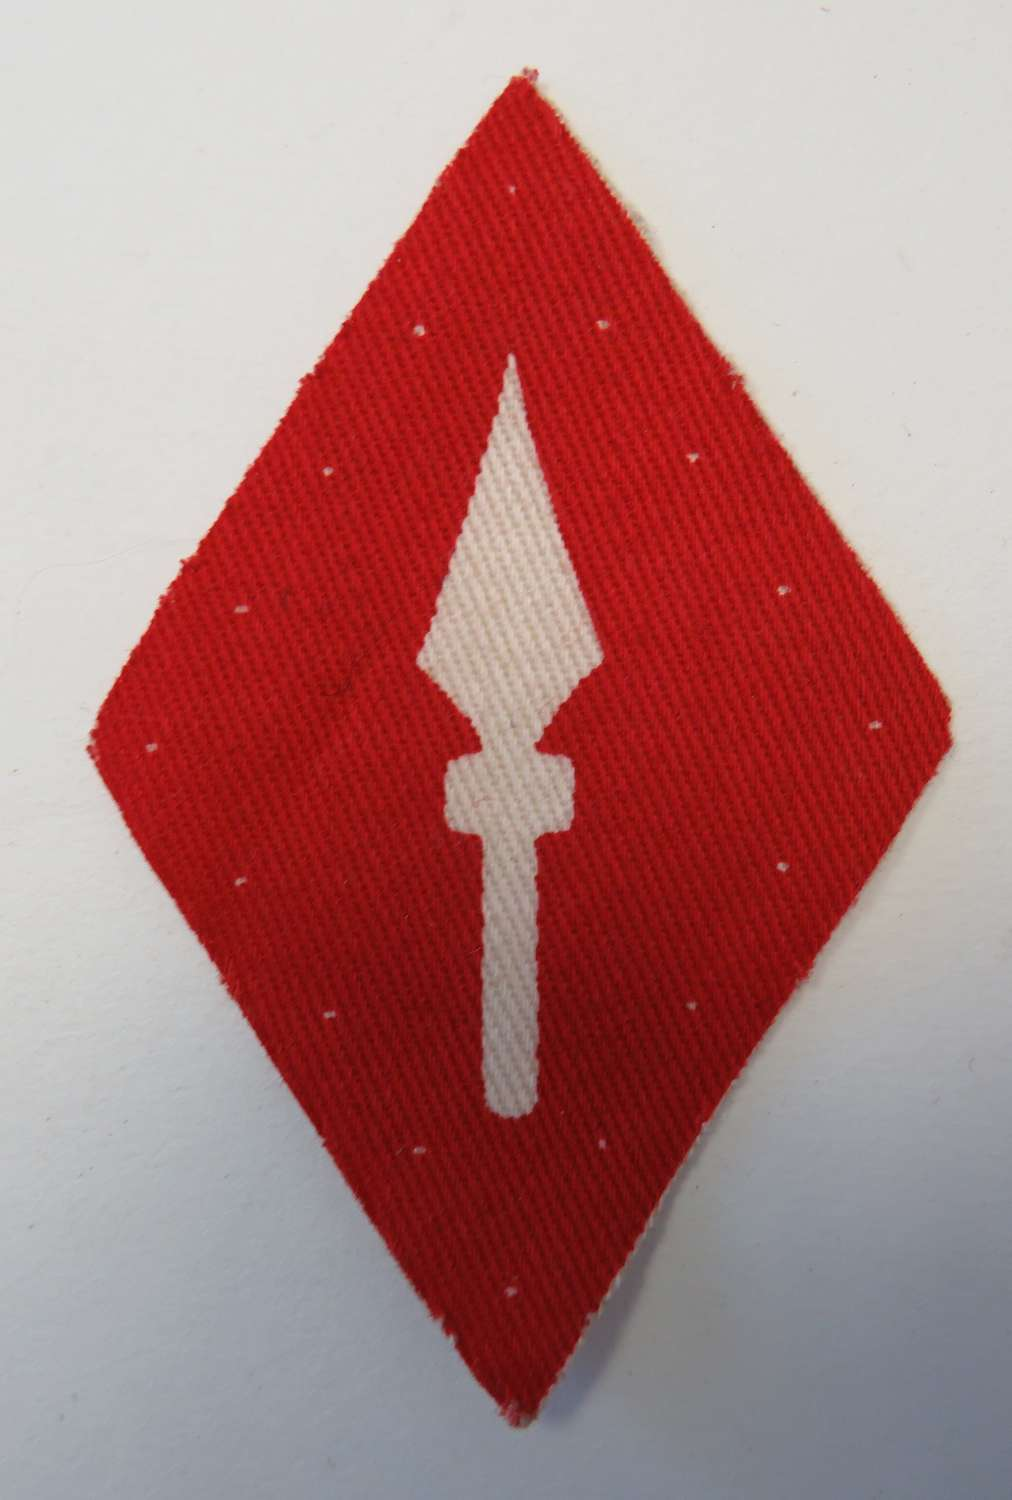 1st Corps Formation Badge